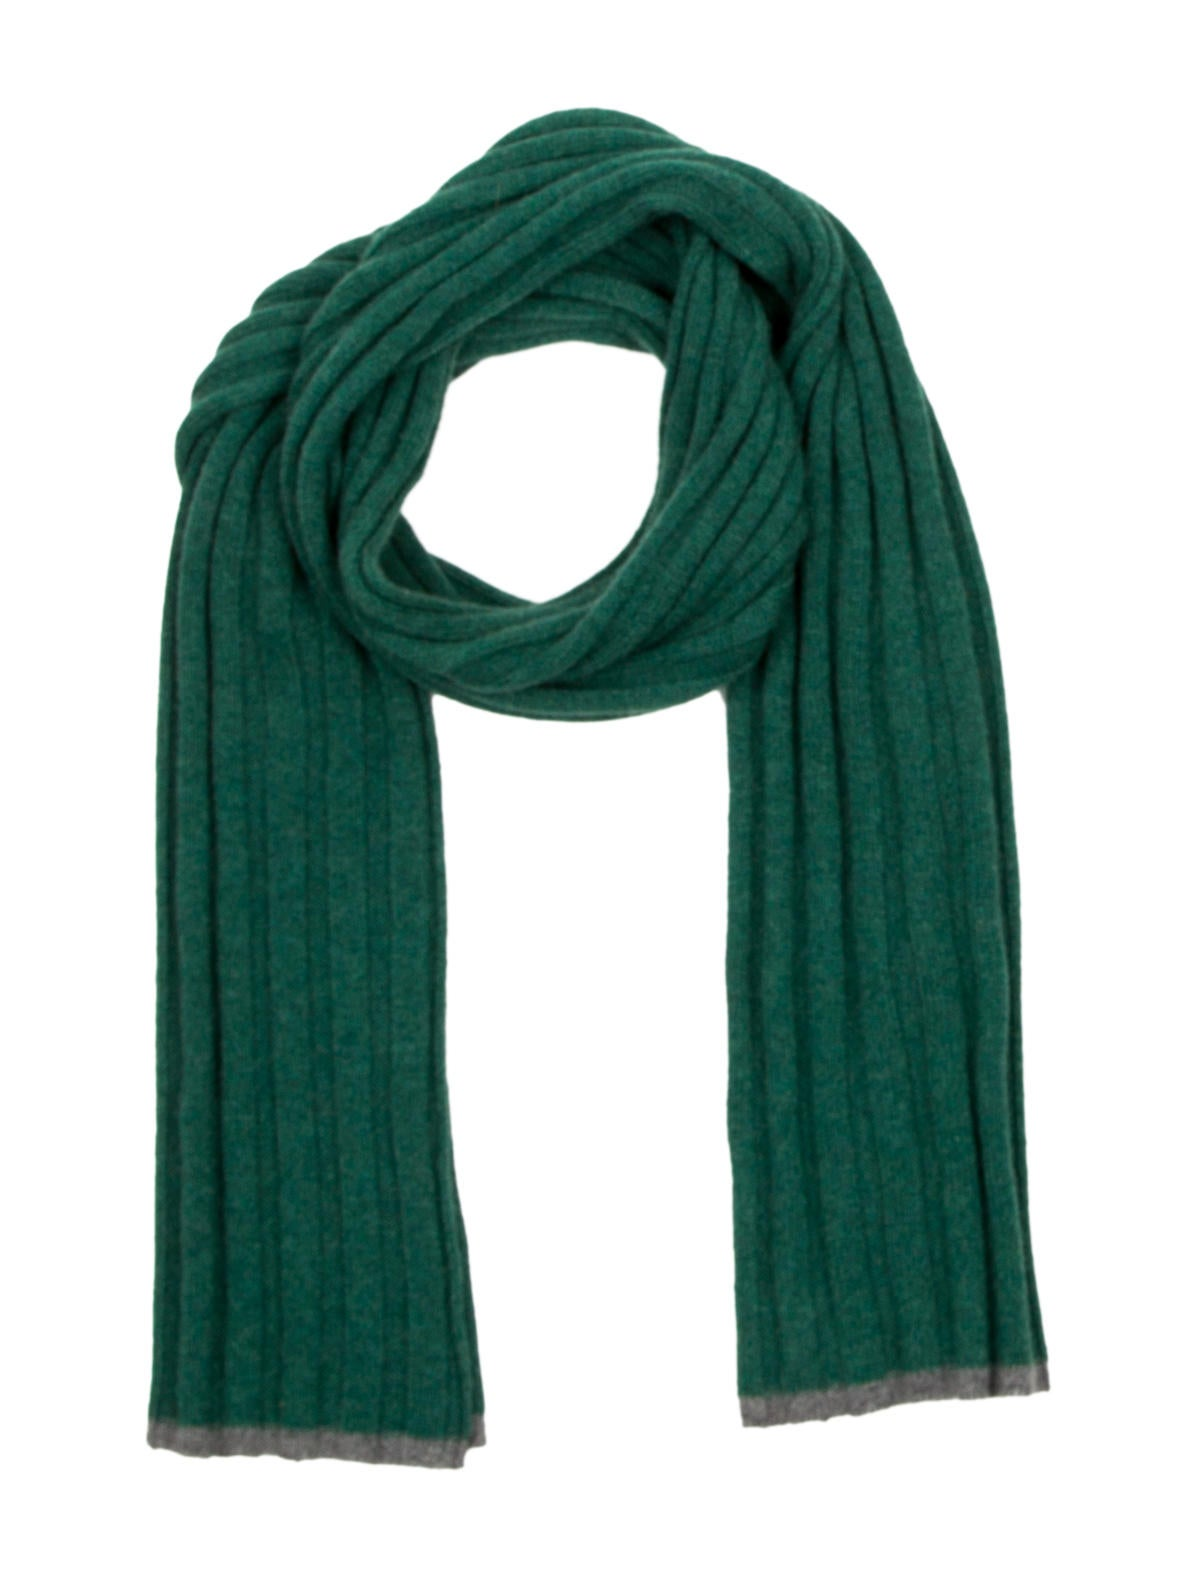 green rib knit brunello cucinelli scarf with